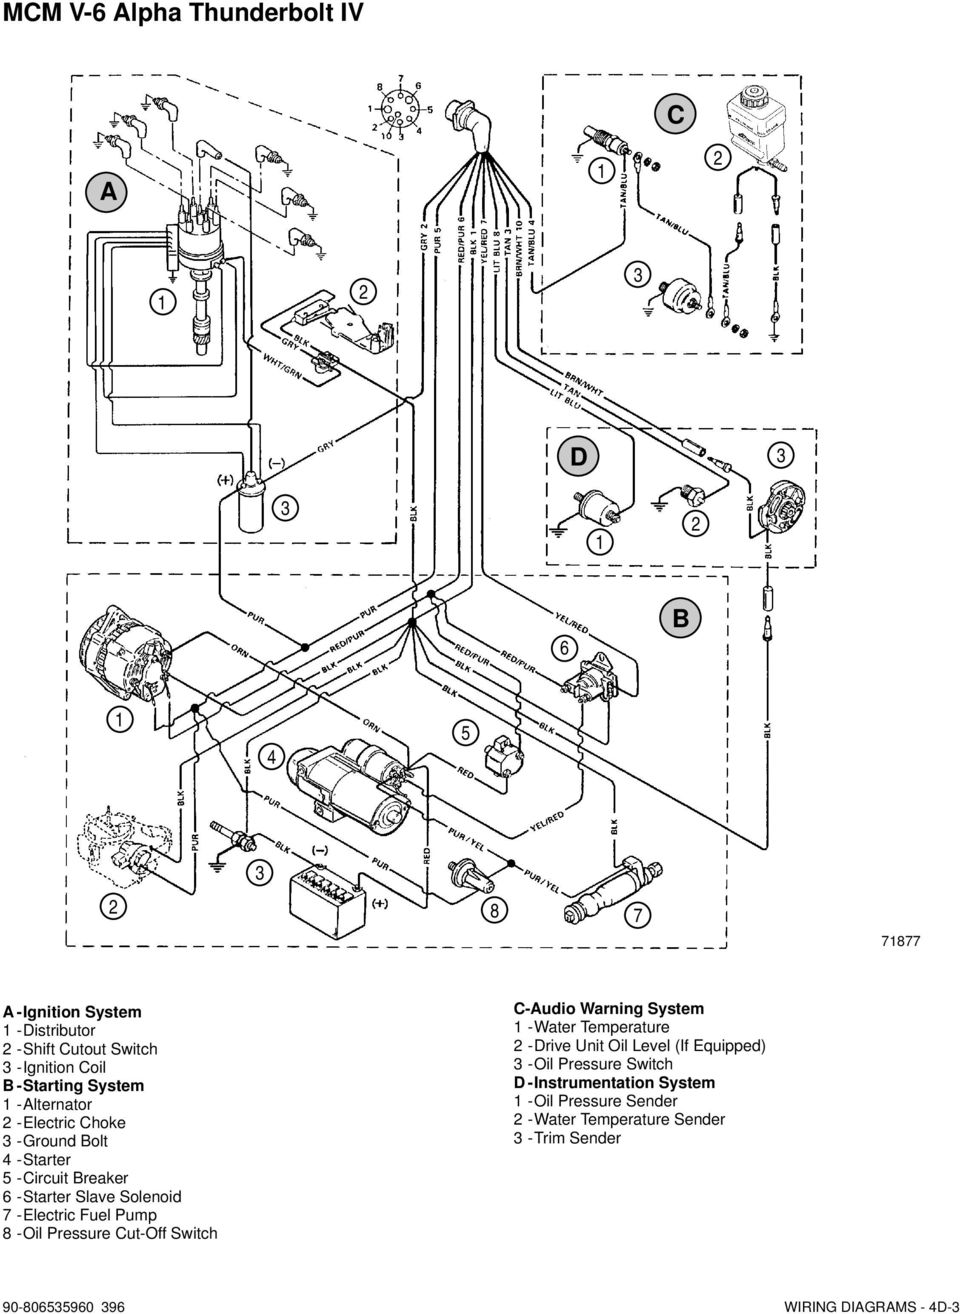 3 liter mercruiser engine diagram bookmark about wiring Mercruiser Engine Wiring Diagram mercruiser 454 502 mpi mag bravo (gen